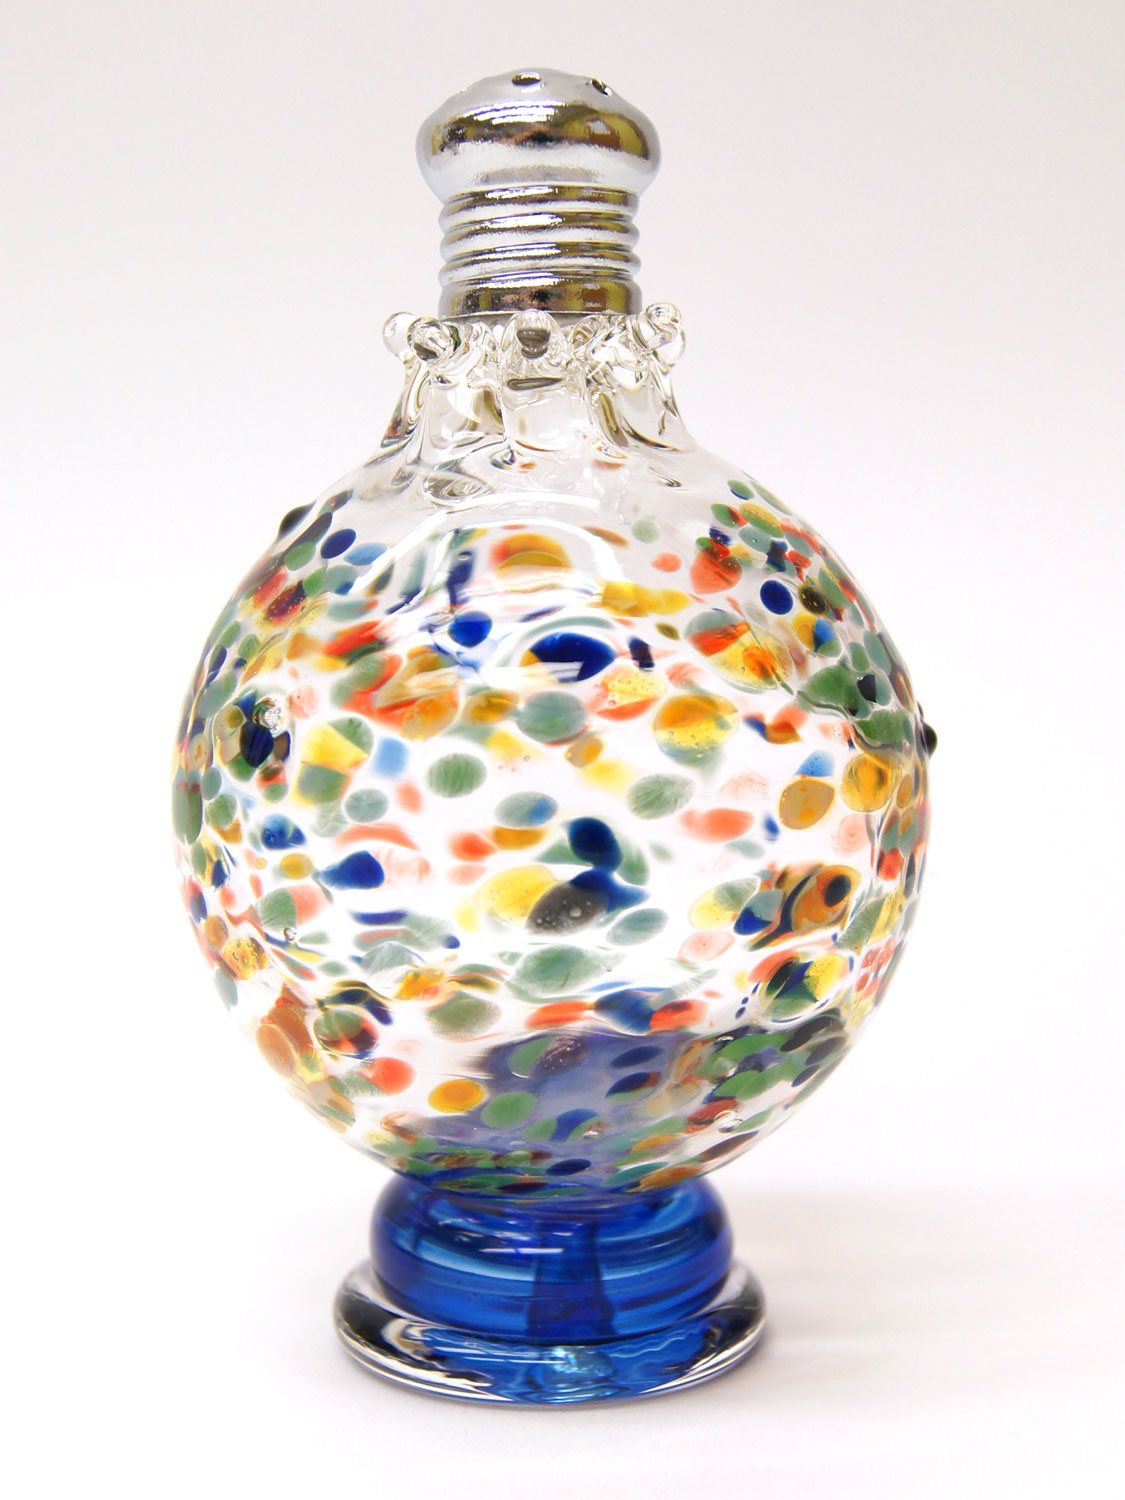 Bulleye Lamp Multi-colored Confetti Blown Glass Salt And Pepper Shakers